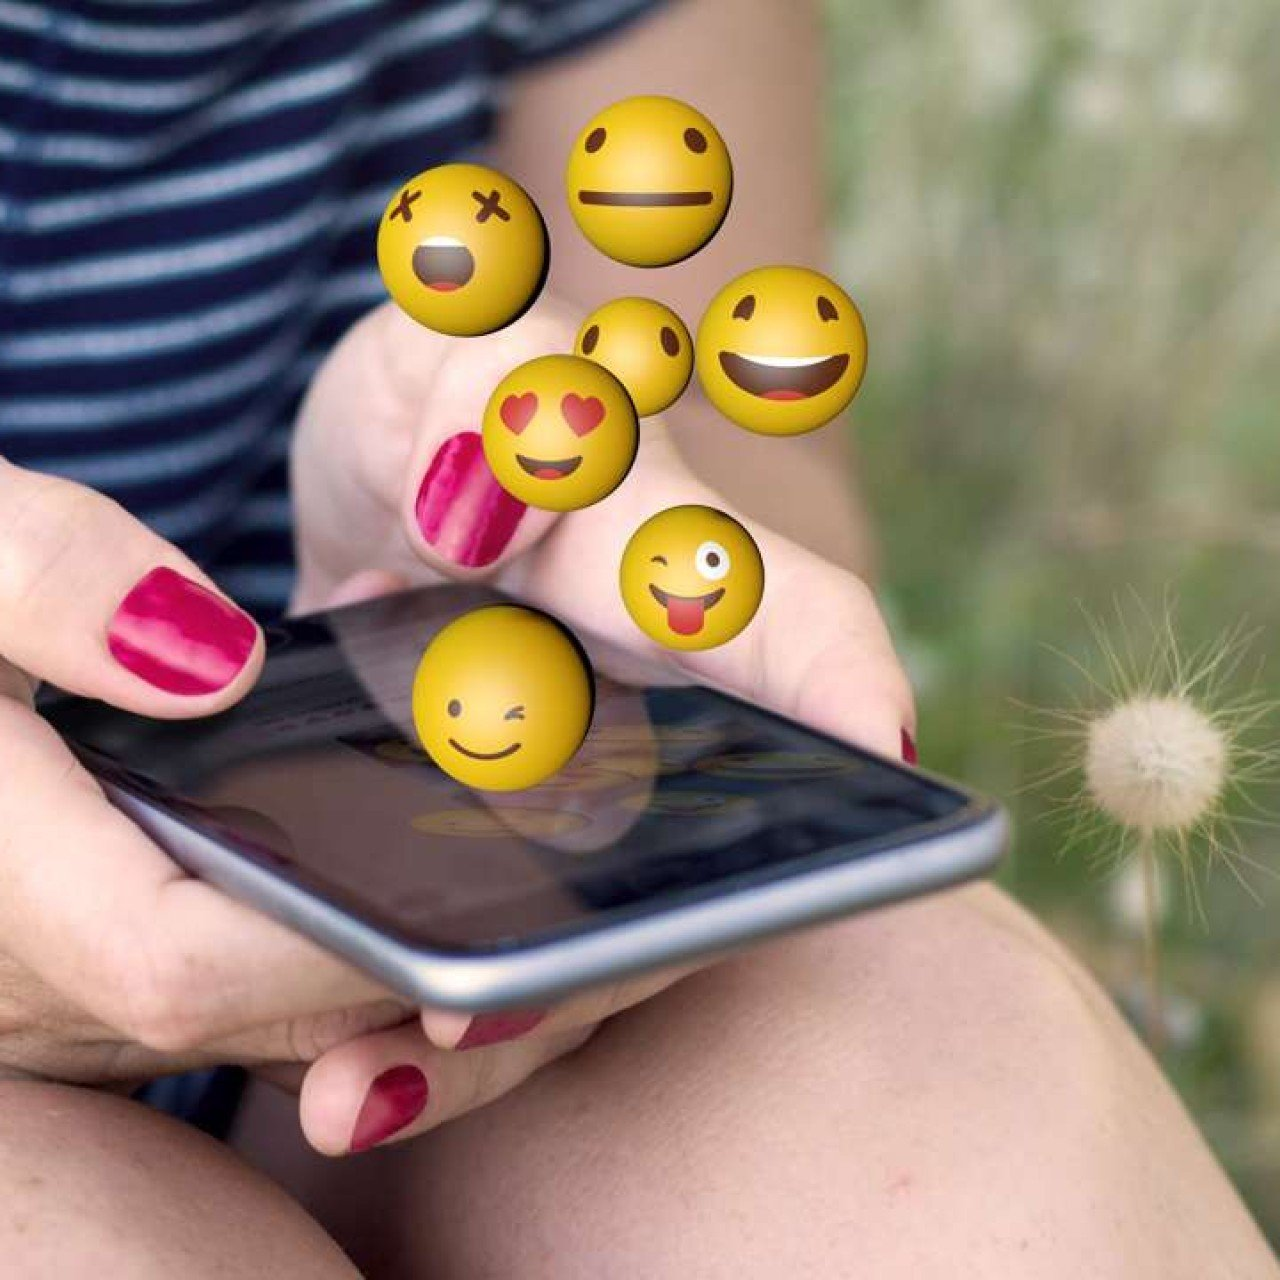 How emojis became the modern world's status symbols – and